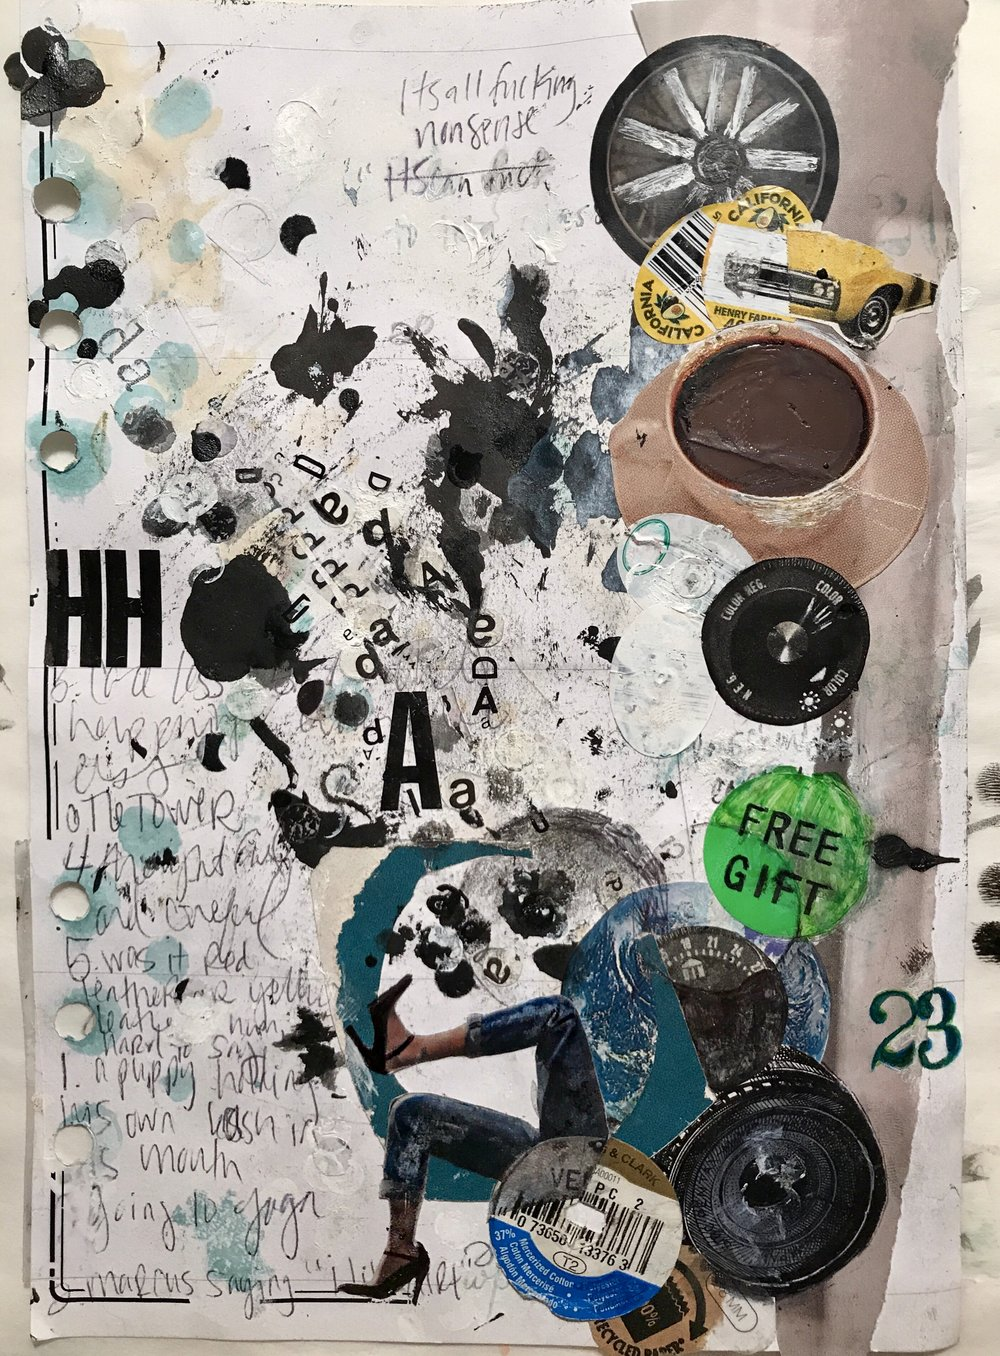 April 2017 journal page w vinyl letters, paper garbage, coffee, stickers, ink, and dreams of Hannah Höch 😻